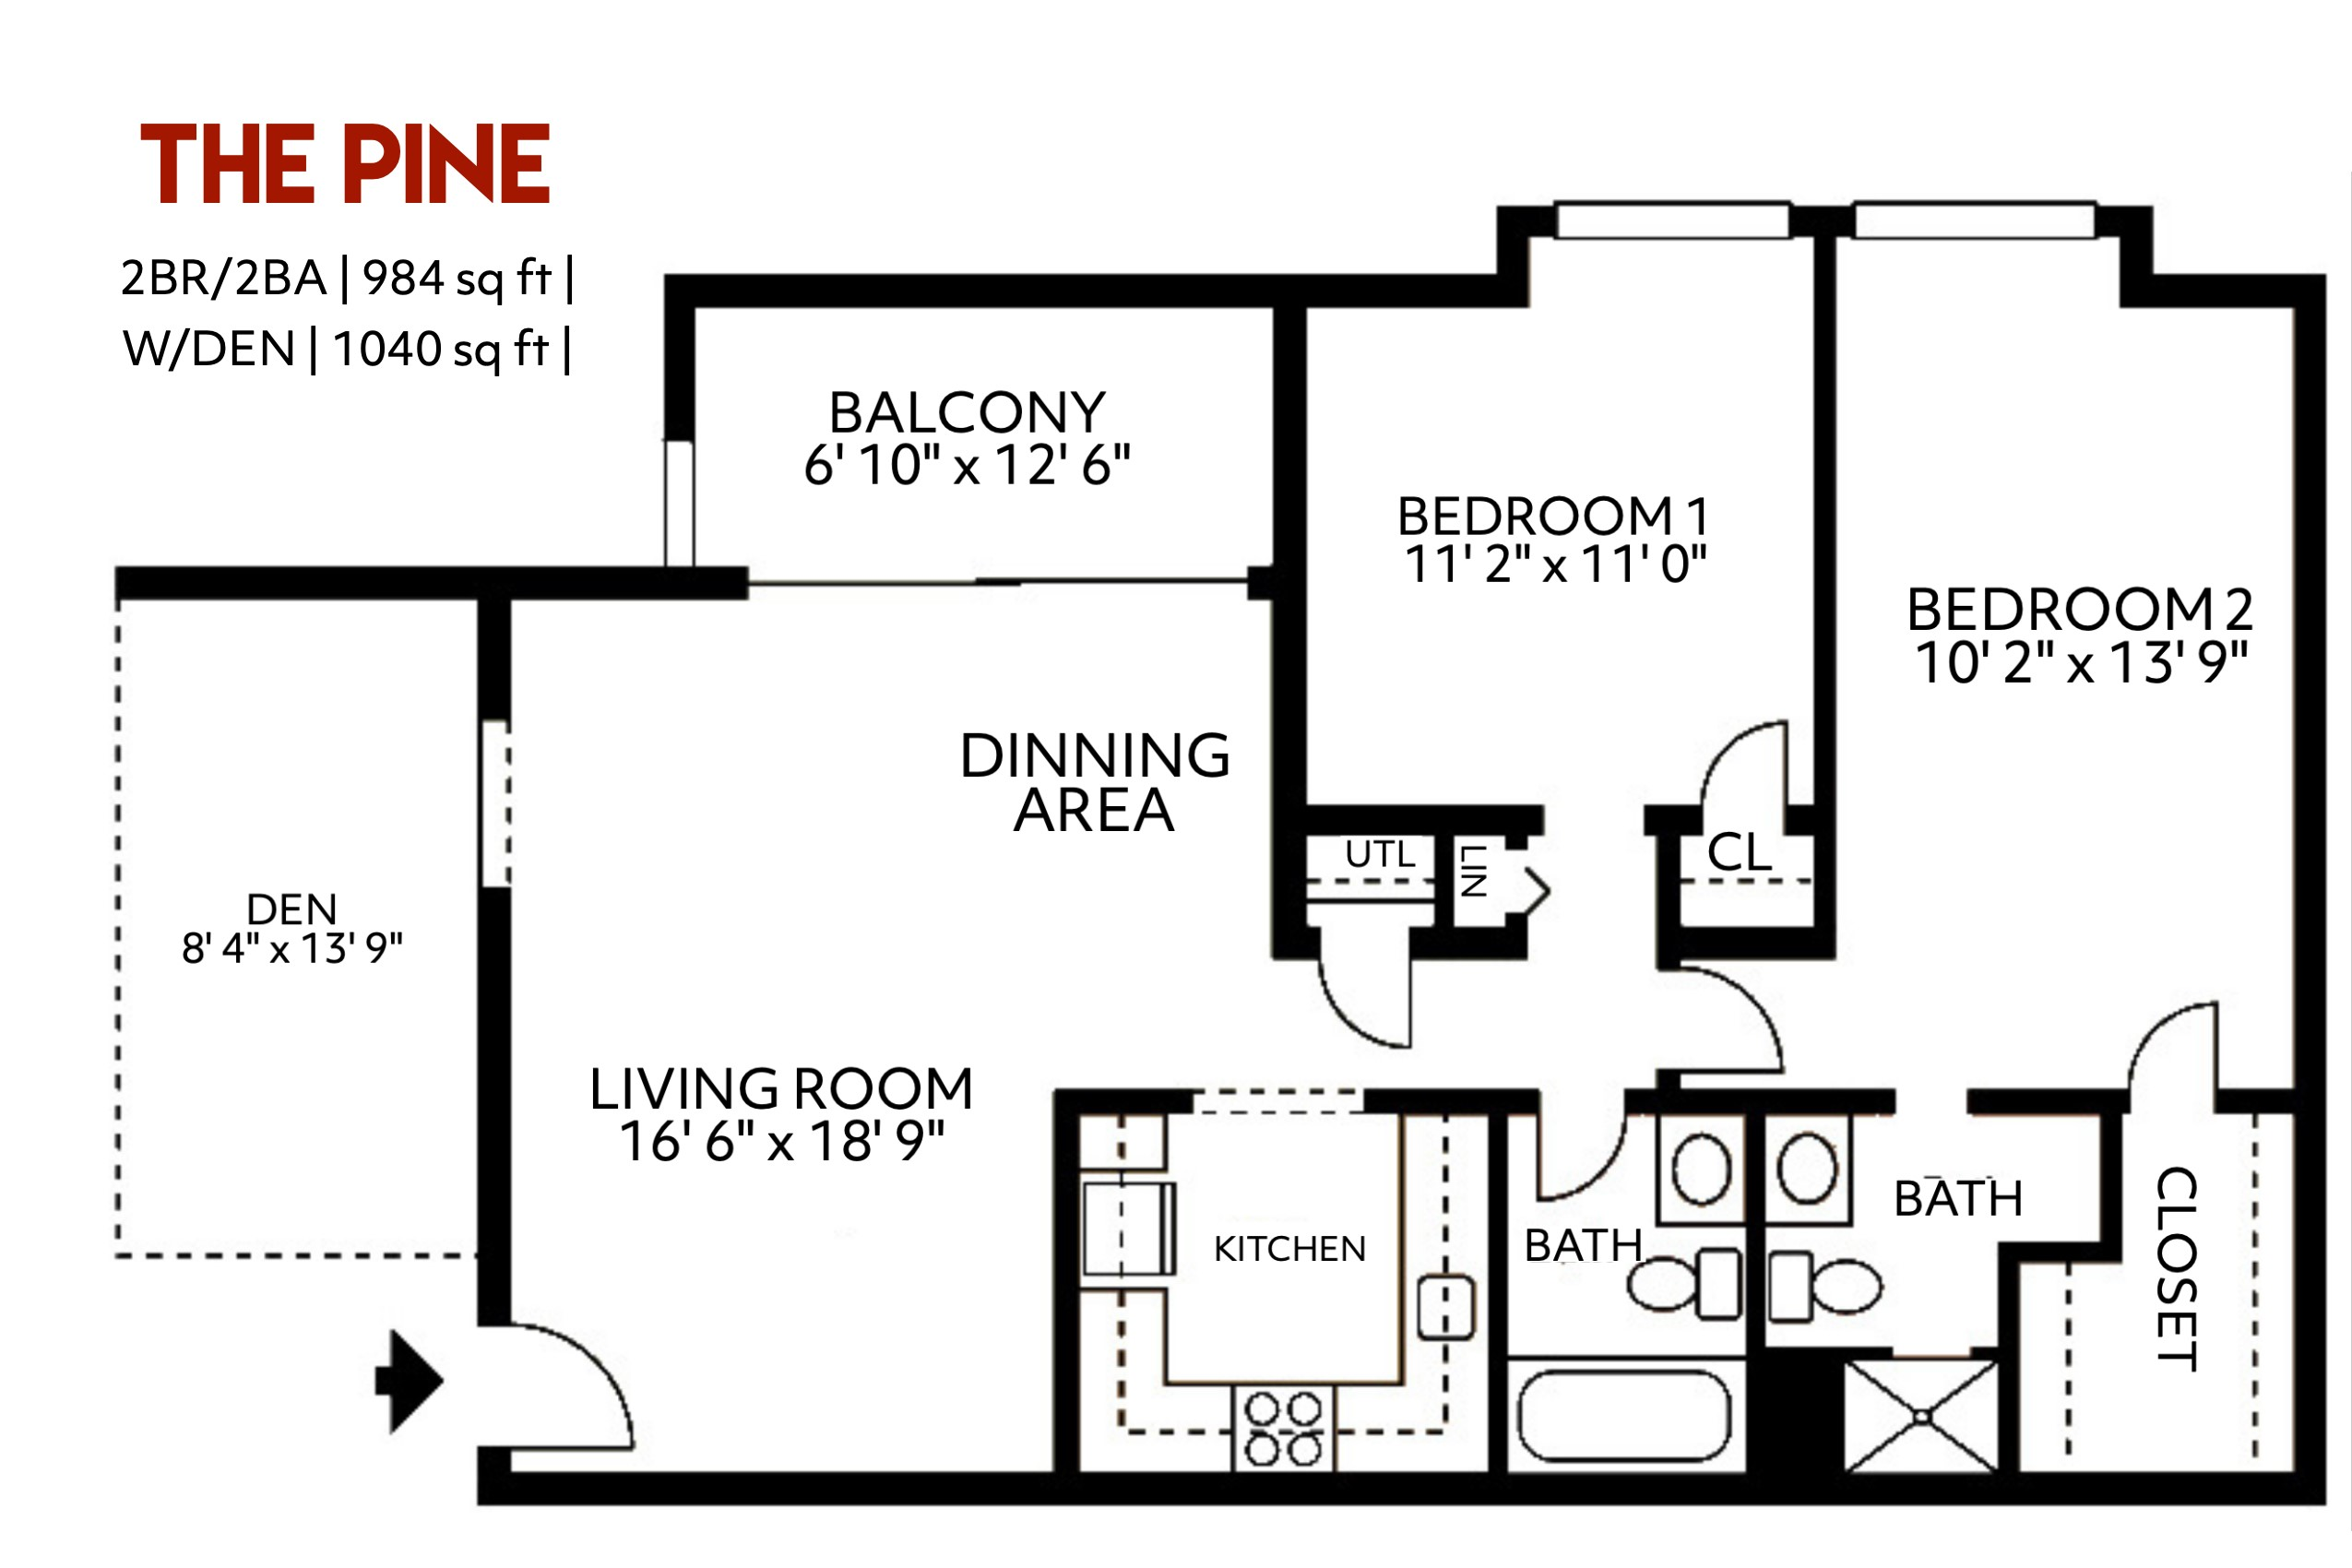 The Pine Floorplan